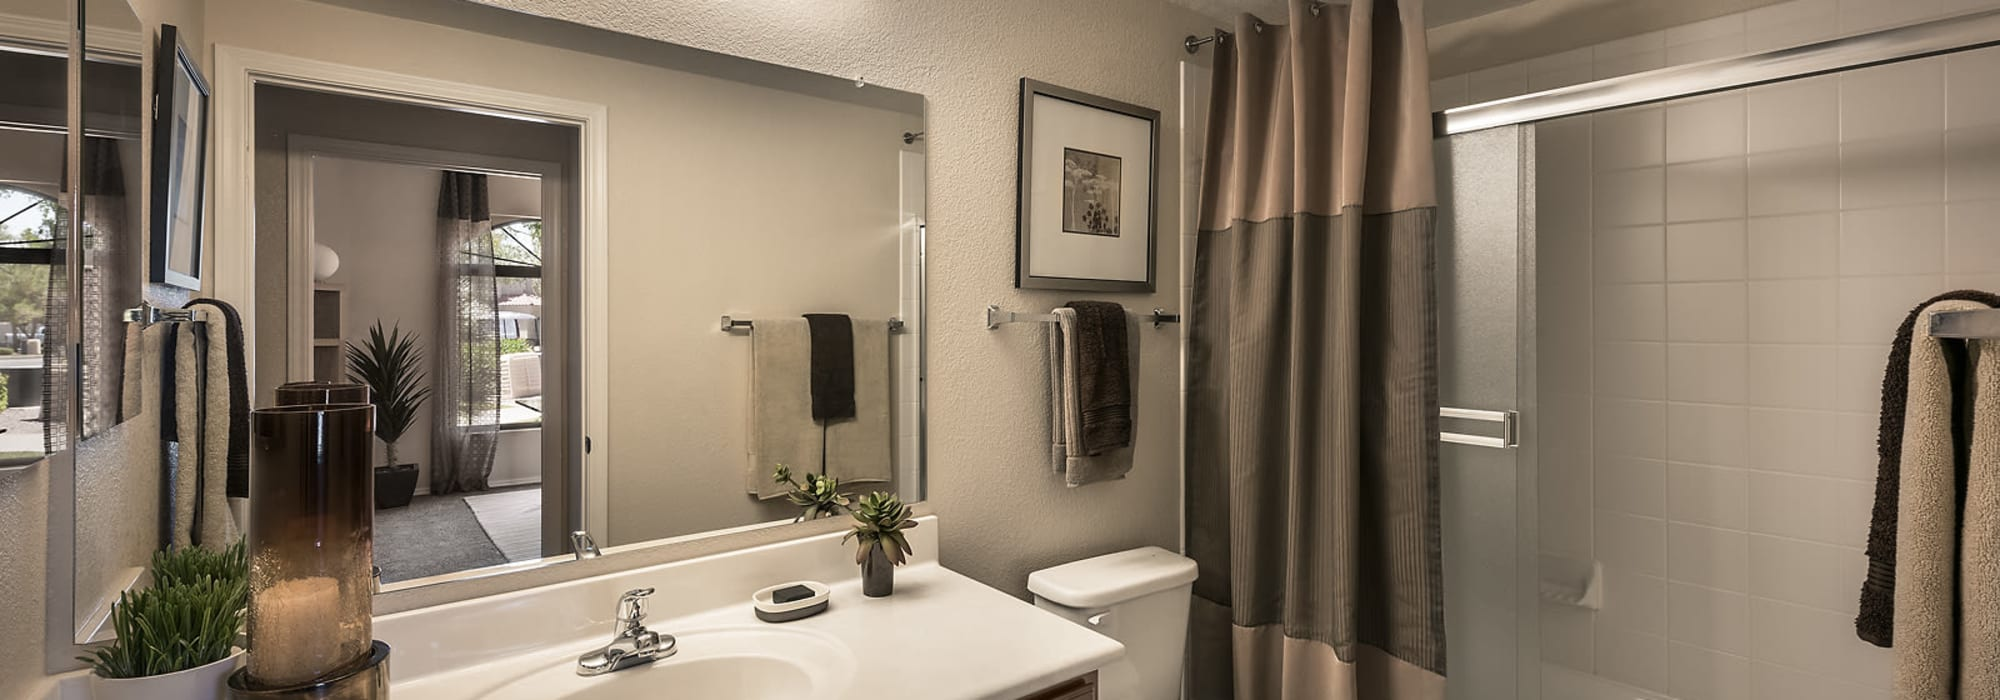 spacious bathroom at San Cervantes in Chandler, Arizona